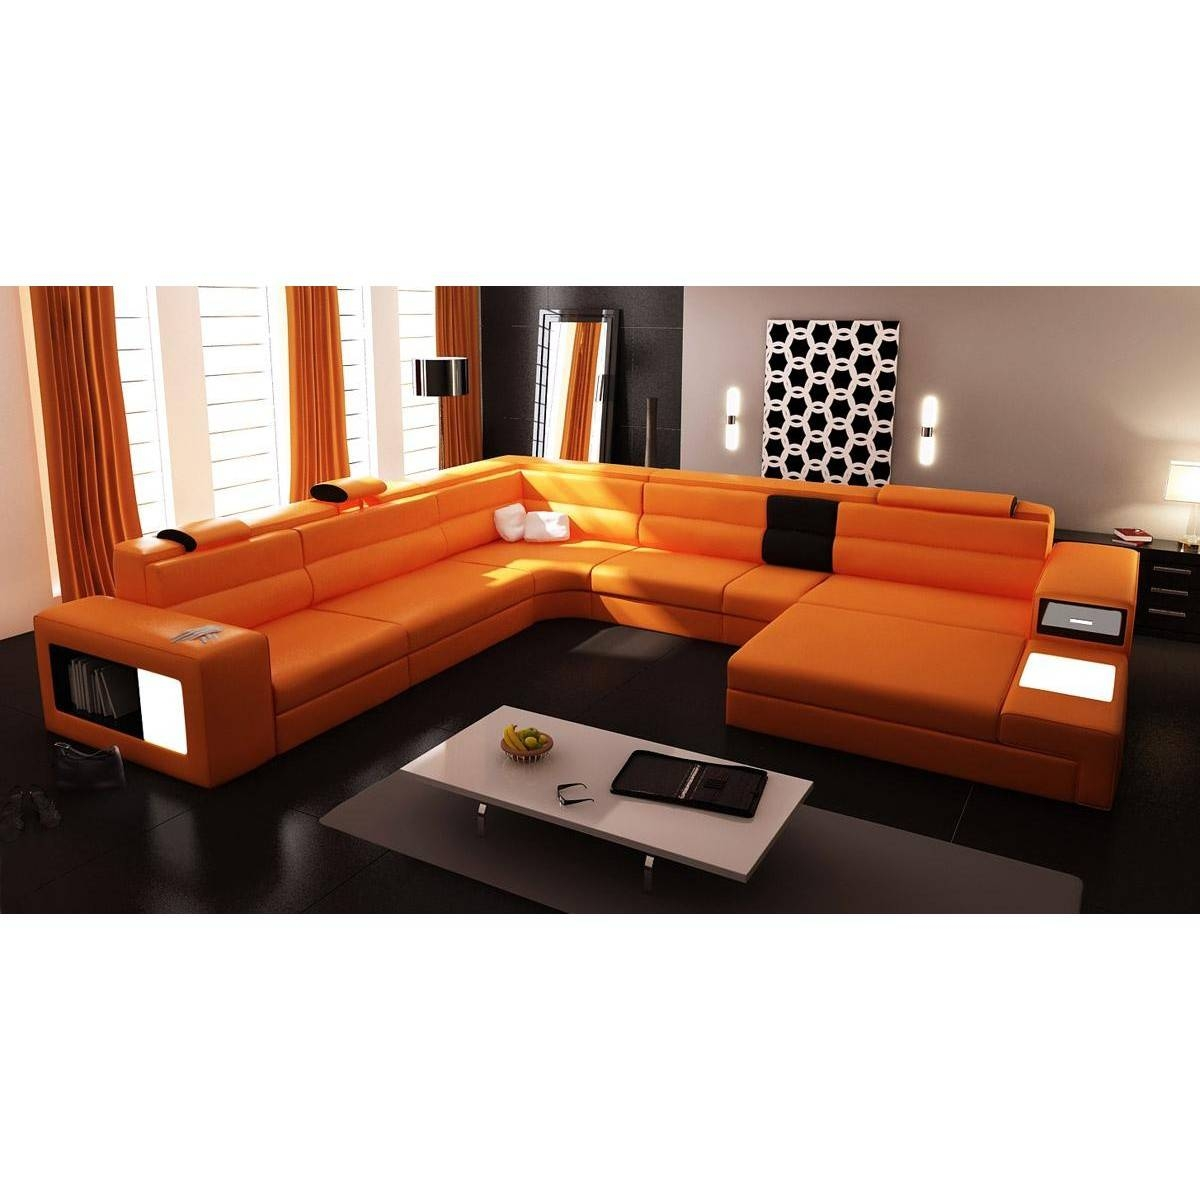 Contemporary & Luxury Furniture; Living Room, Bedroom,la Furniture for Orange Sectional Sofa (Image 14 of 30)